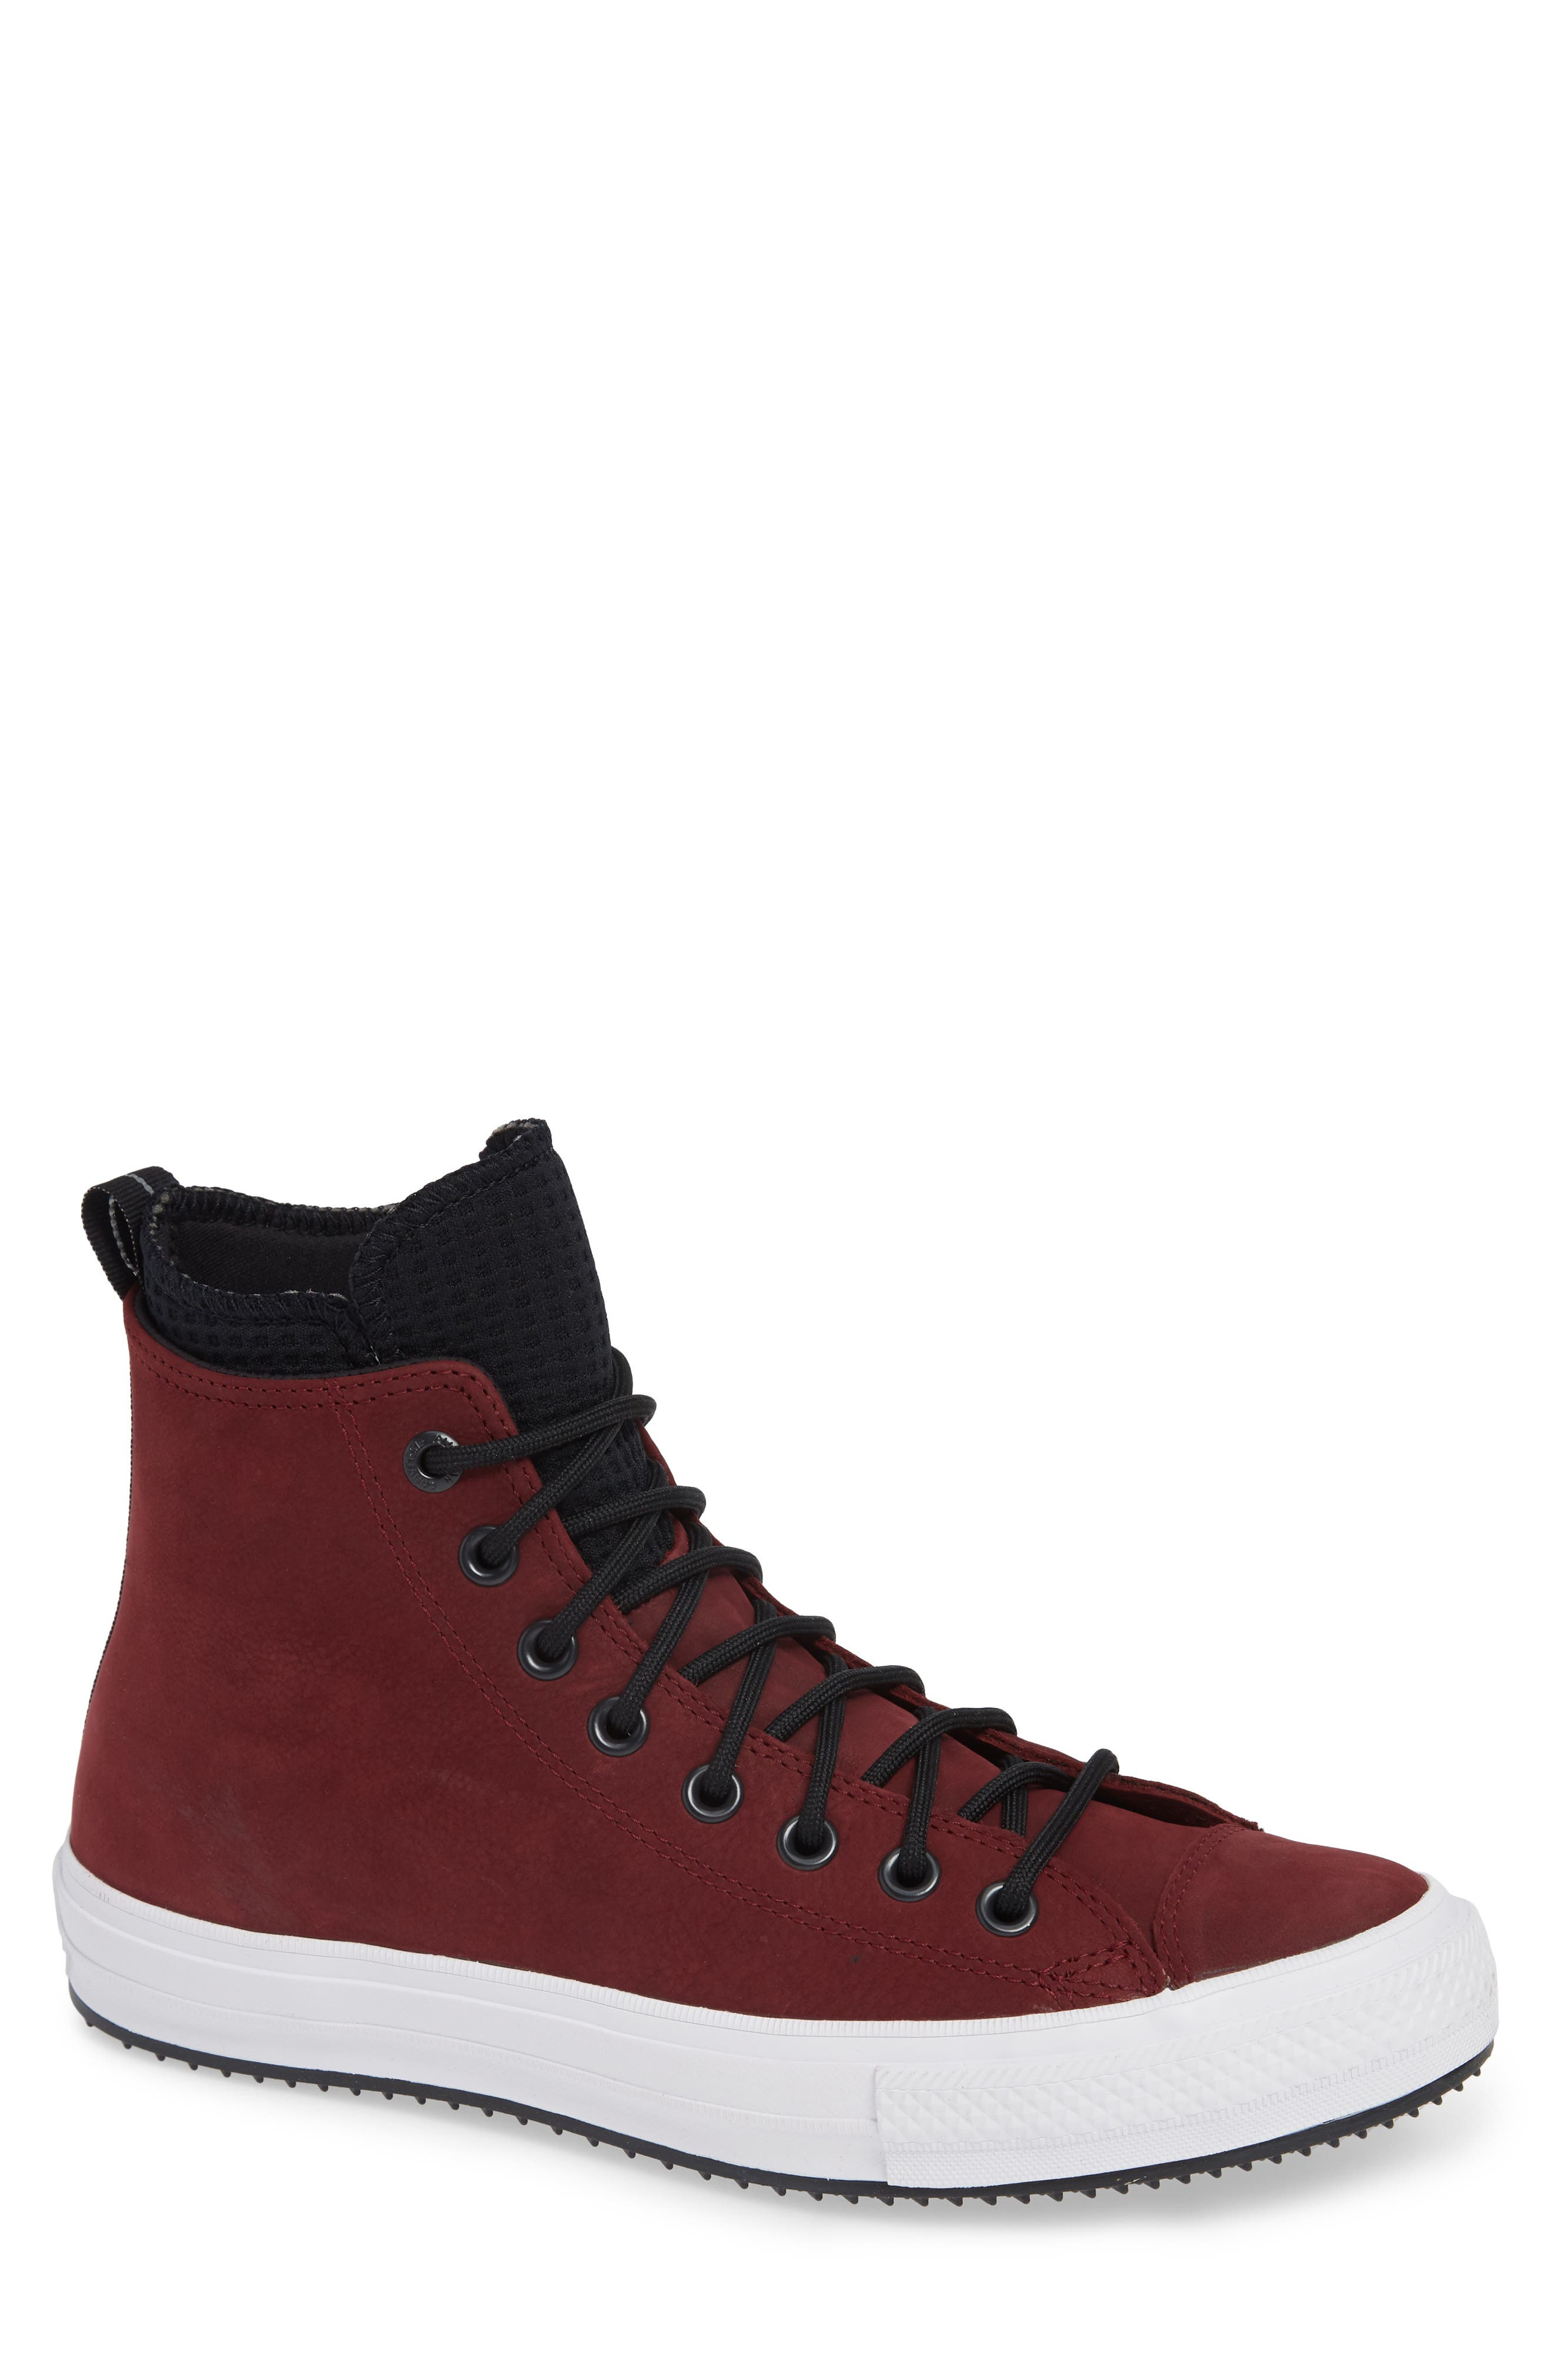 b940cc4243bc Men s High Top Classic Sneakers